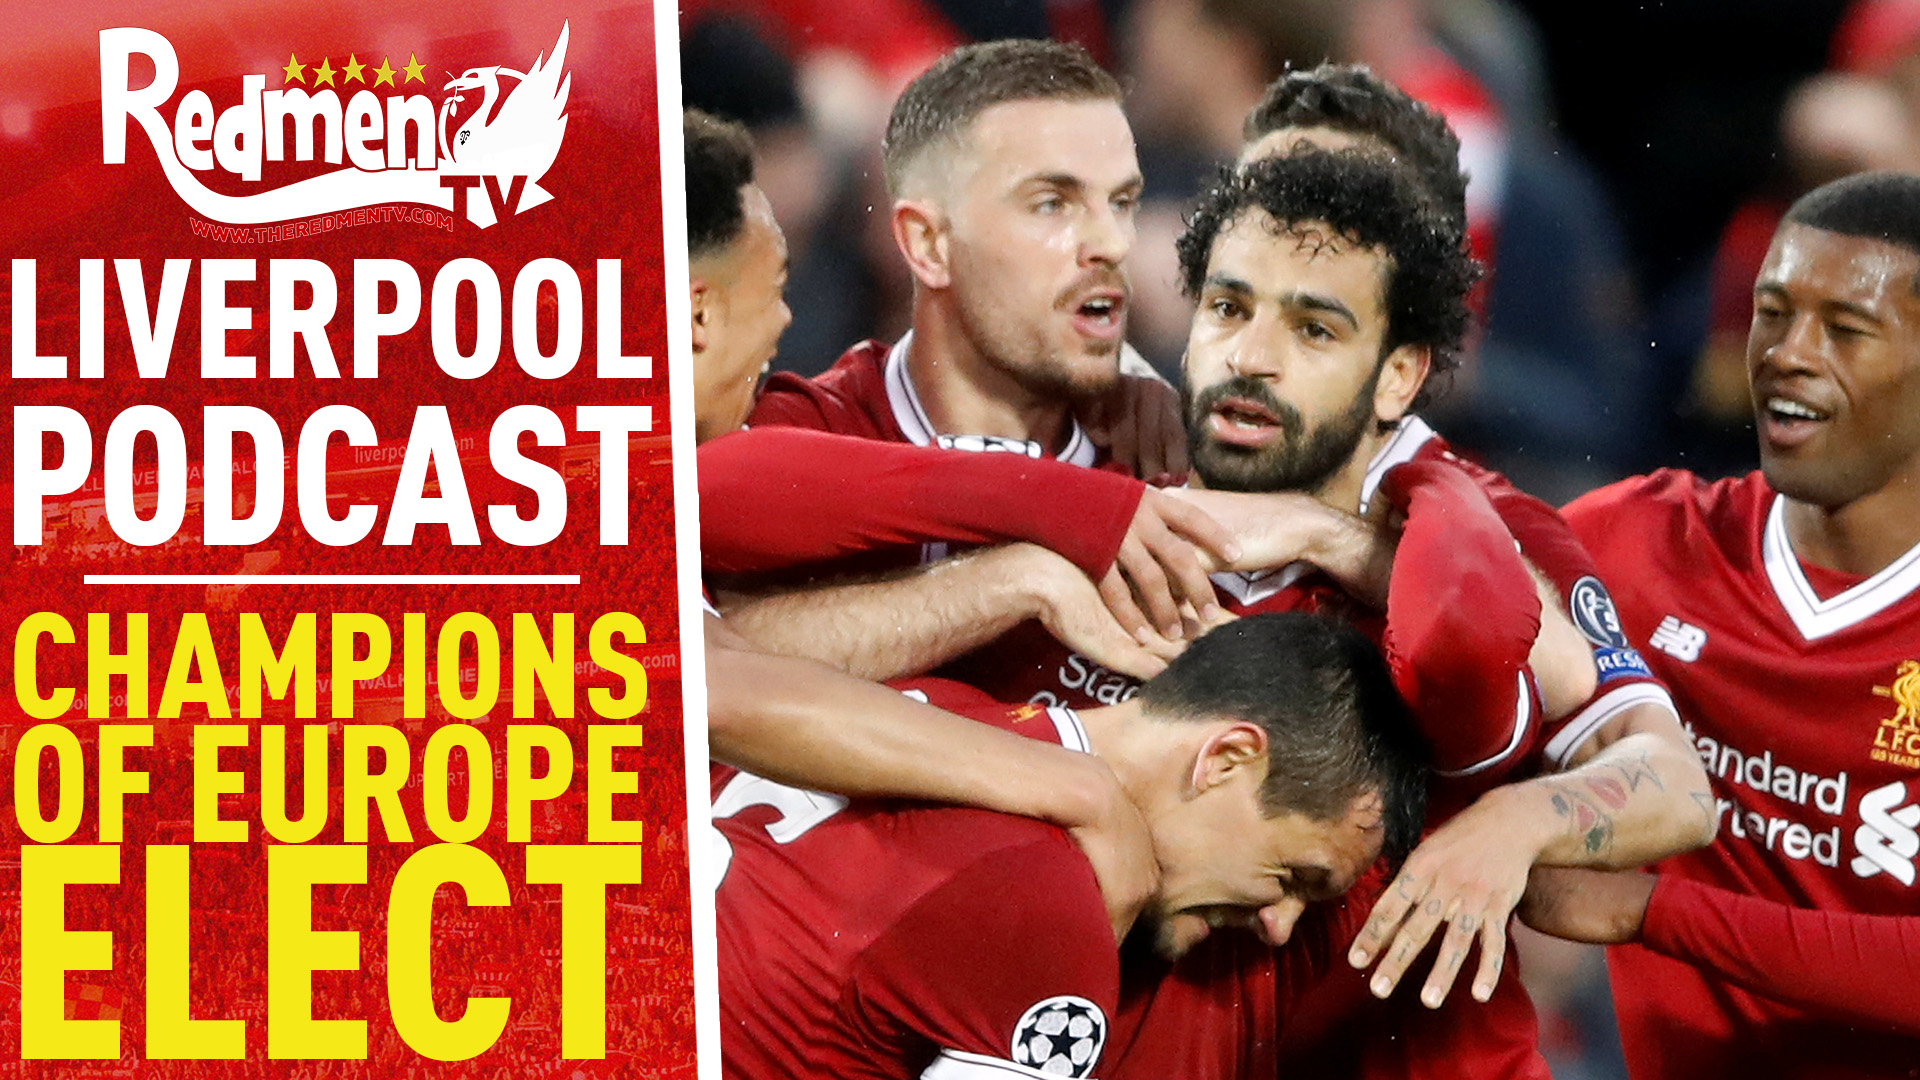 CHAMPIONS OF EUROPE-ELECT | LIVERPOOL FC VIDEO PODCAST